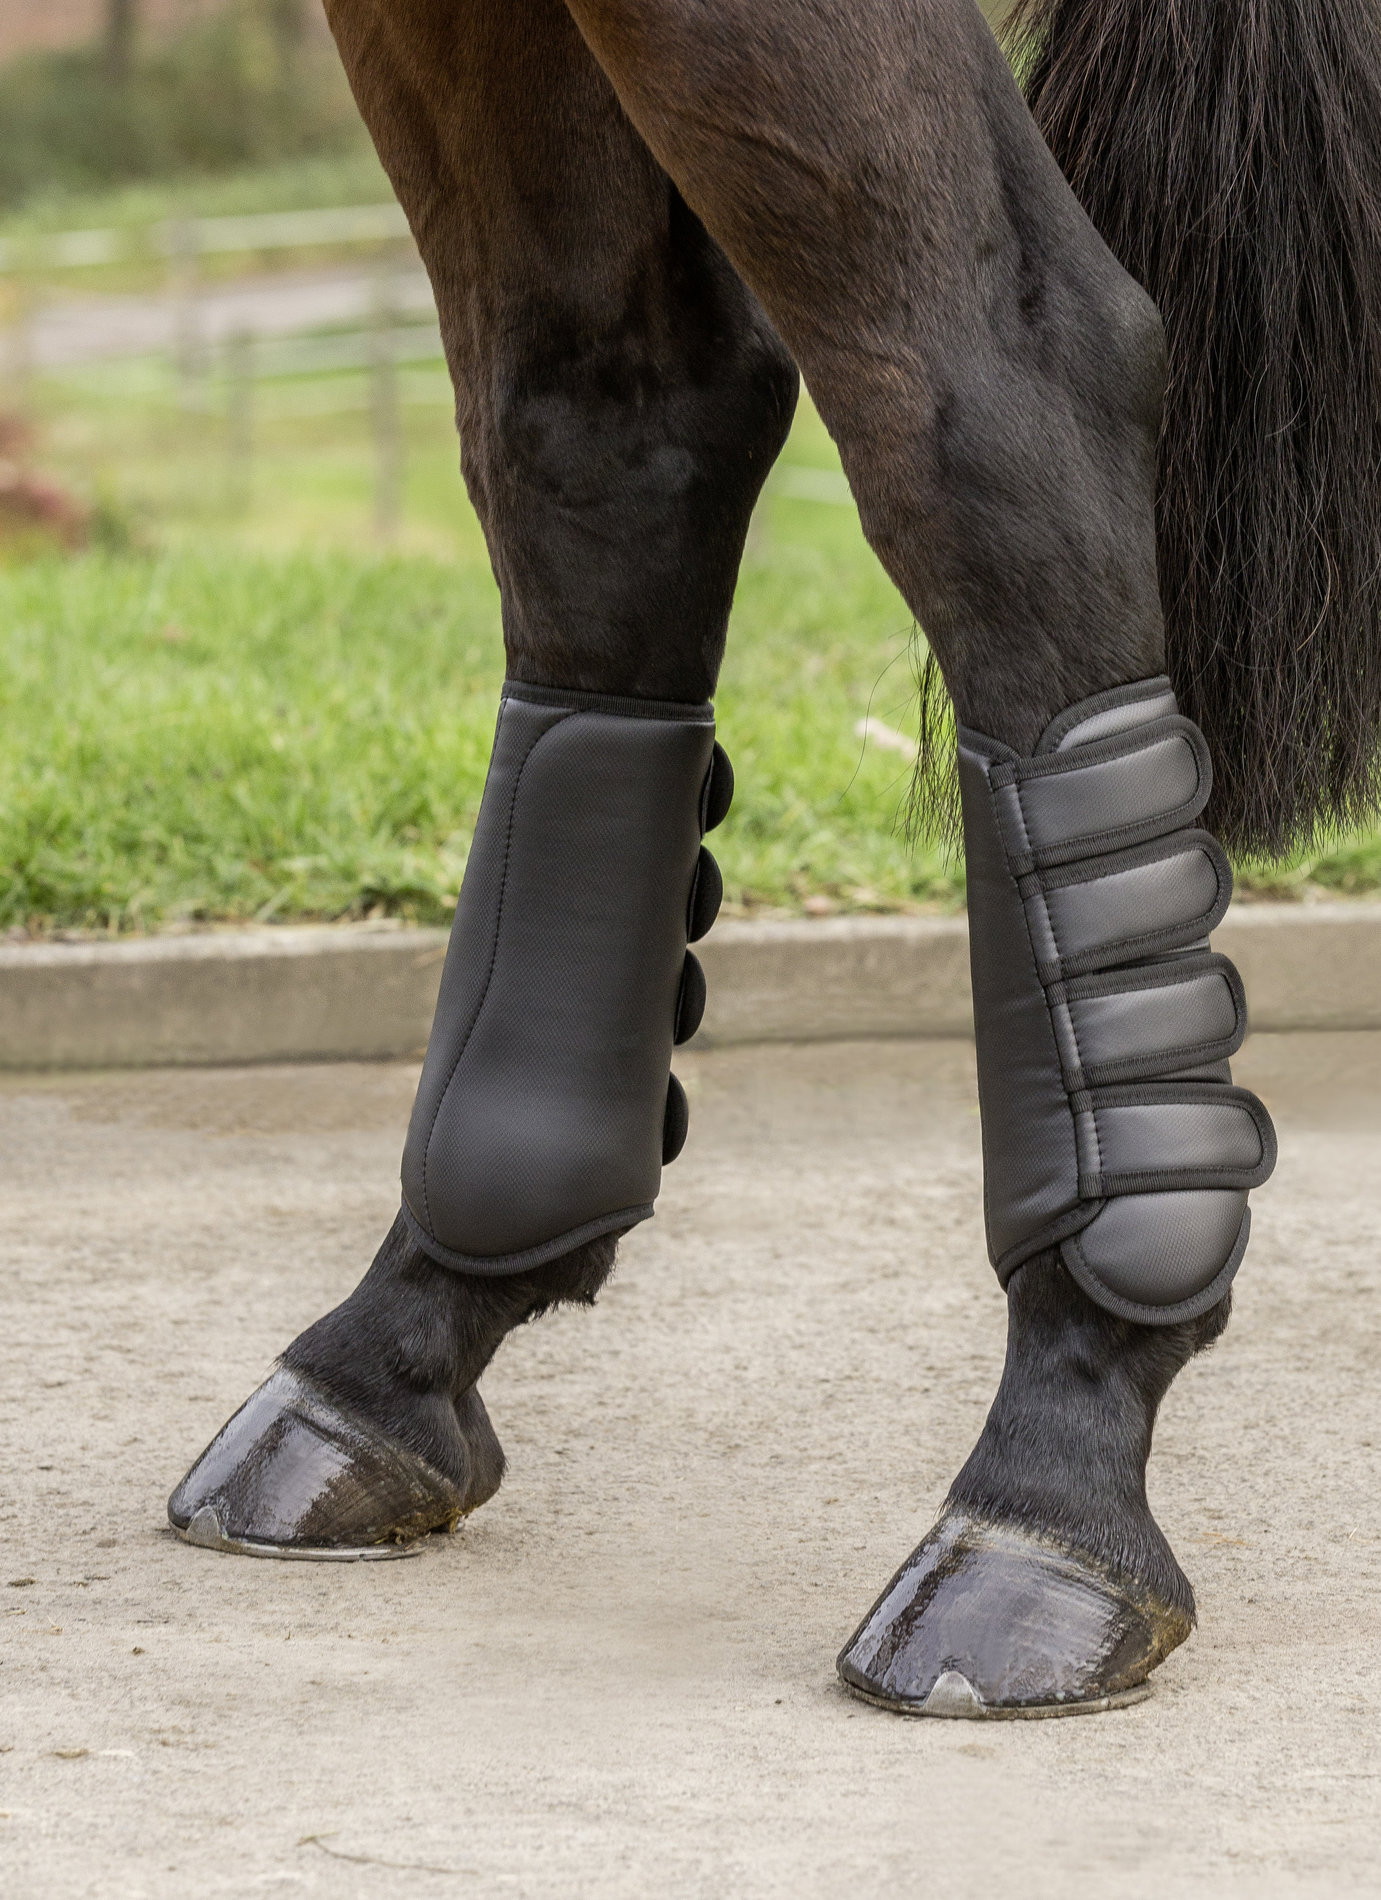 USG Tendon Protection Boots